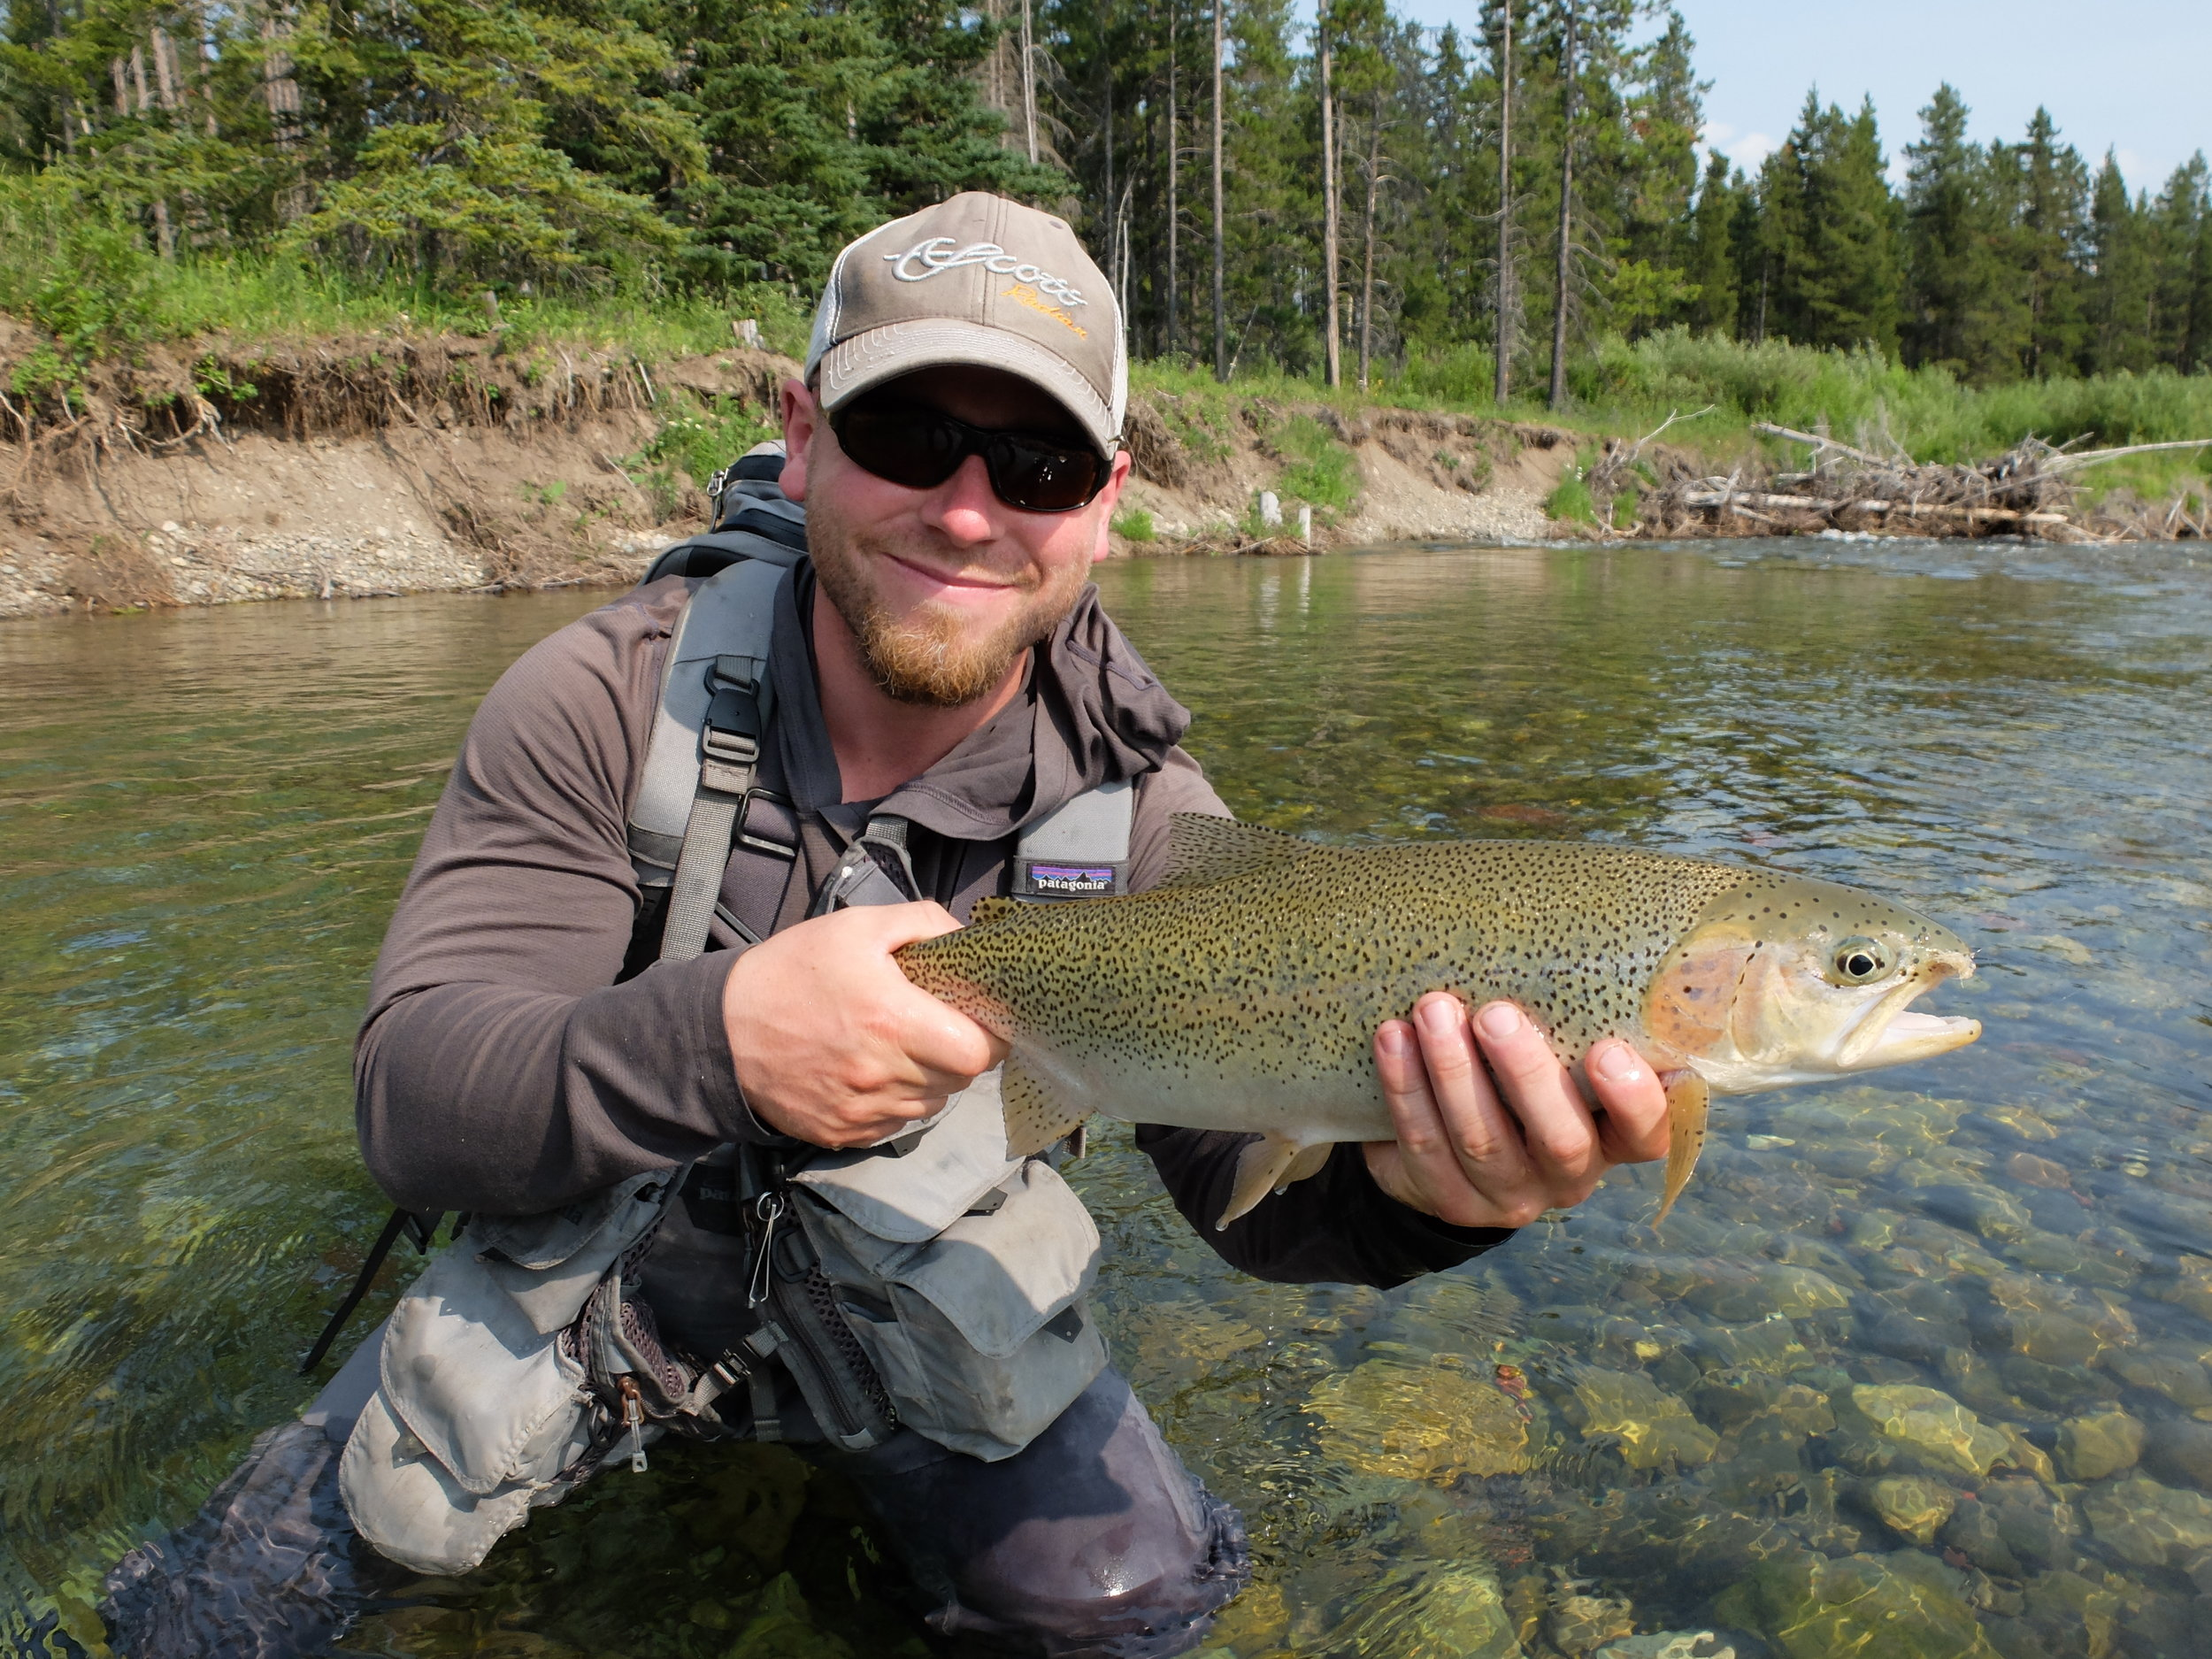 Paul Laframboise with a nice cutty:  https://www.ironbowflyshop.com/southern-alberta-walk-and-wade